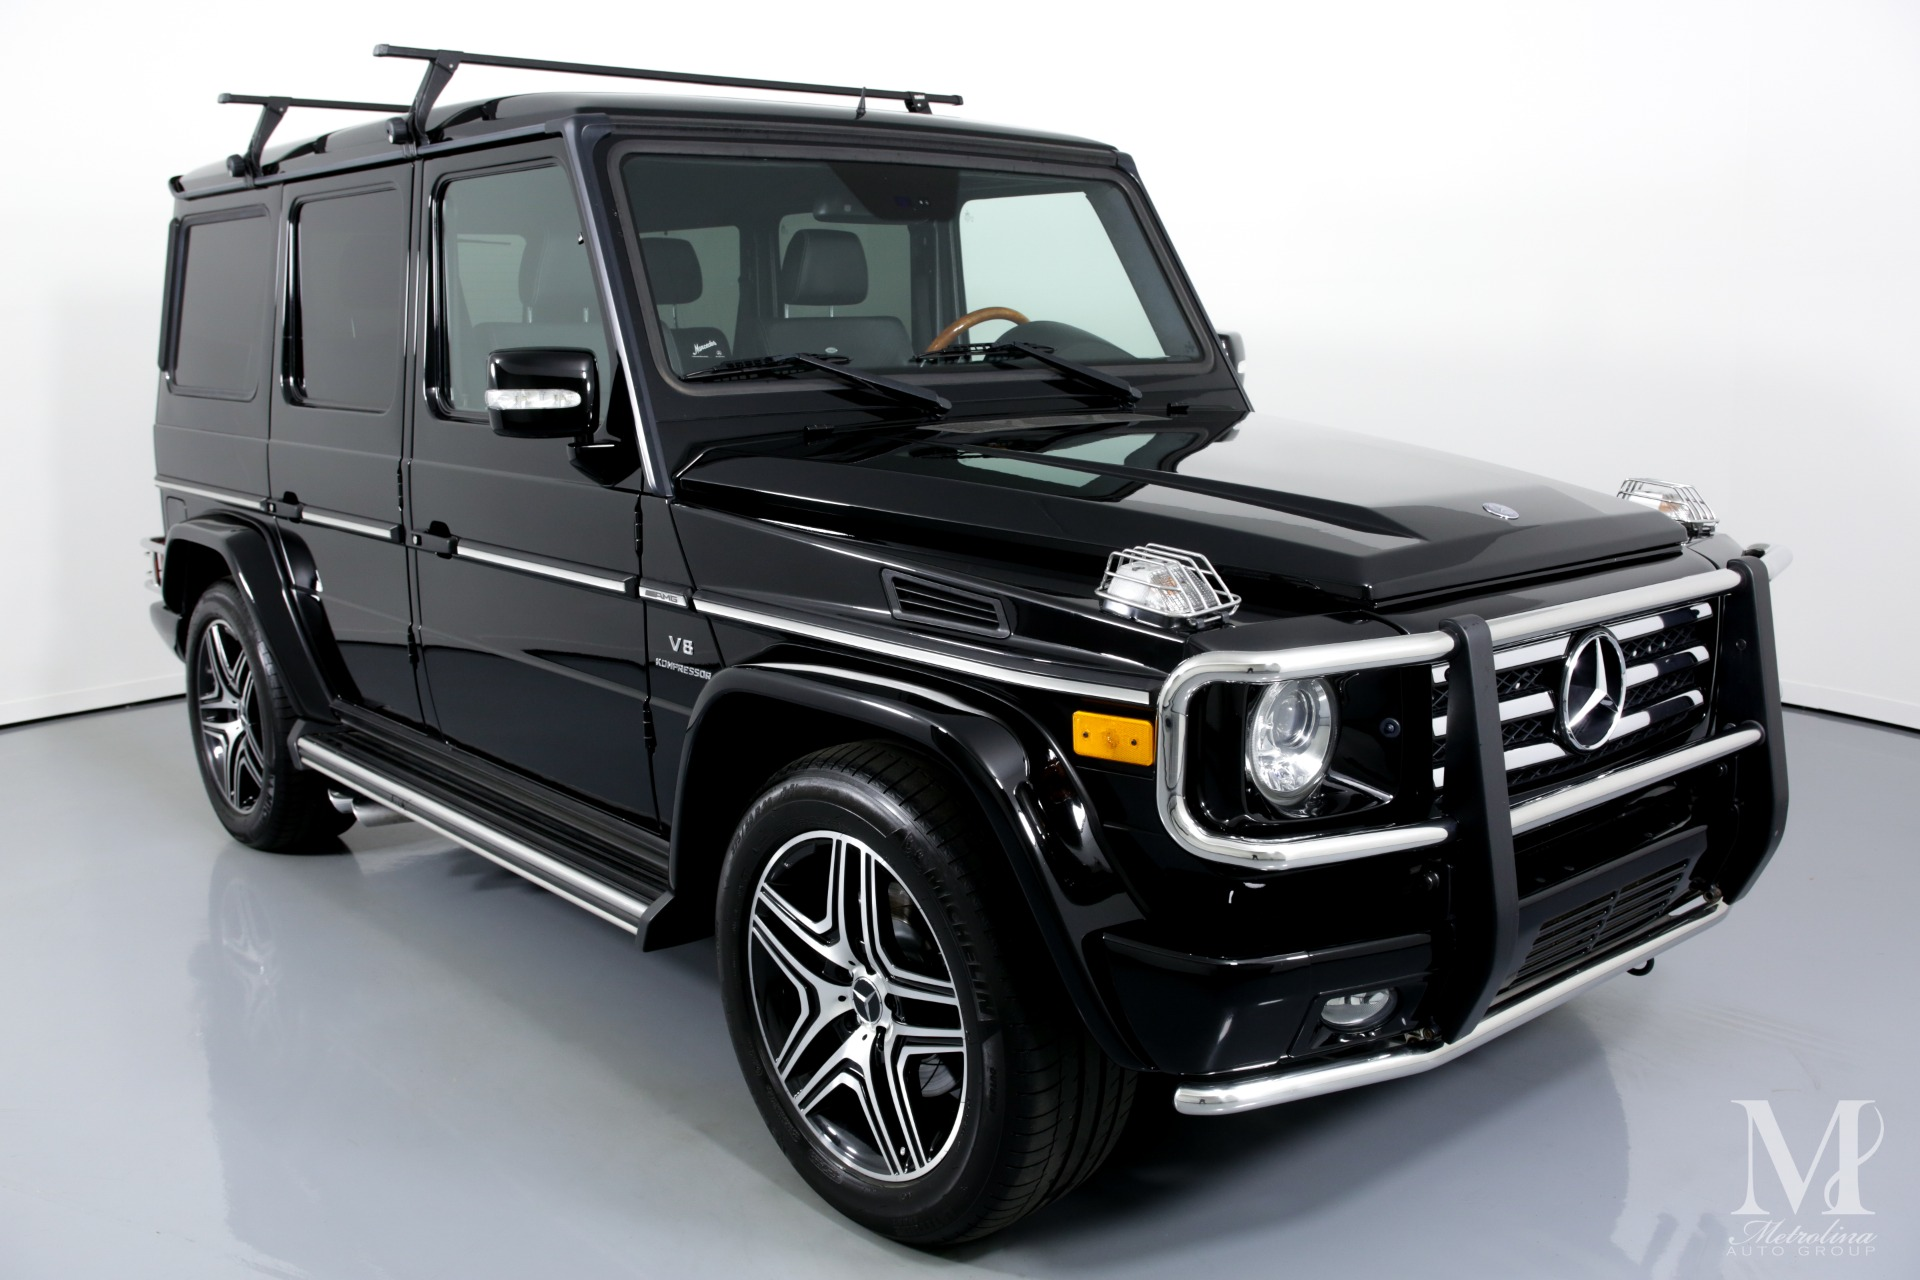 Used 2010 Mercedes-Benz G-Class G 55 AMG AWD 4MATIC 4dr SUV for sale $49,996 at Metrolina Auto Group in Charlotte NC 28217 - 2